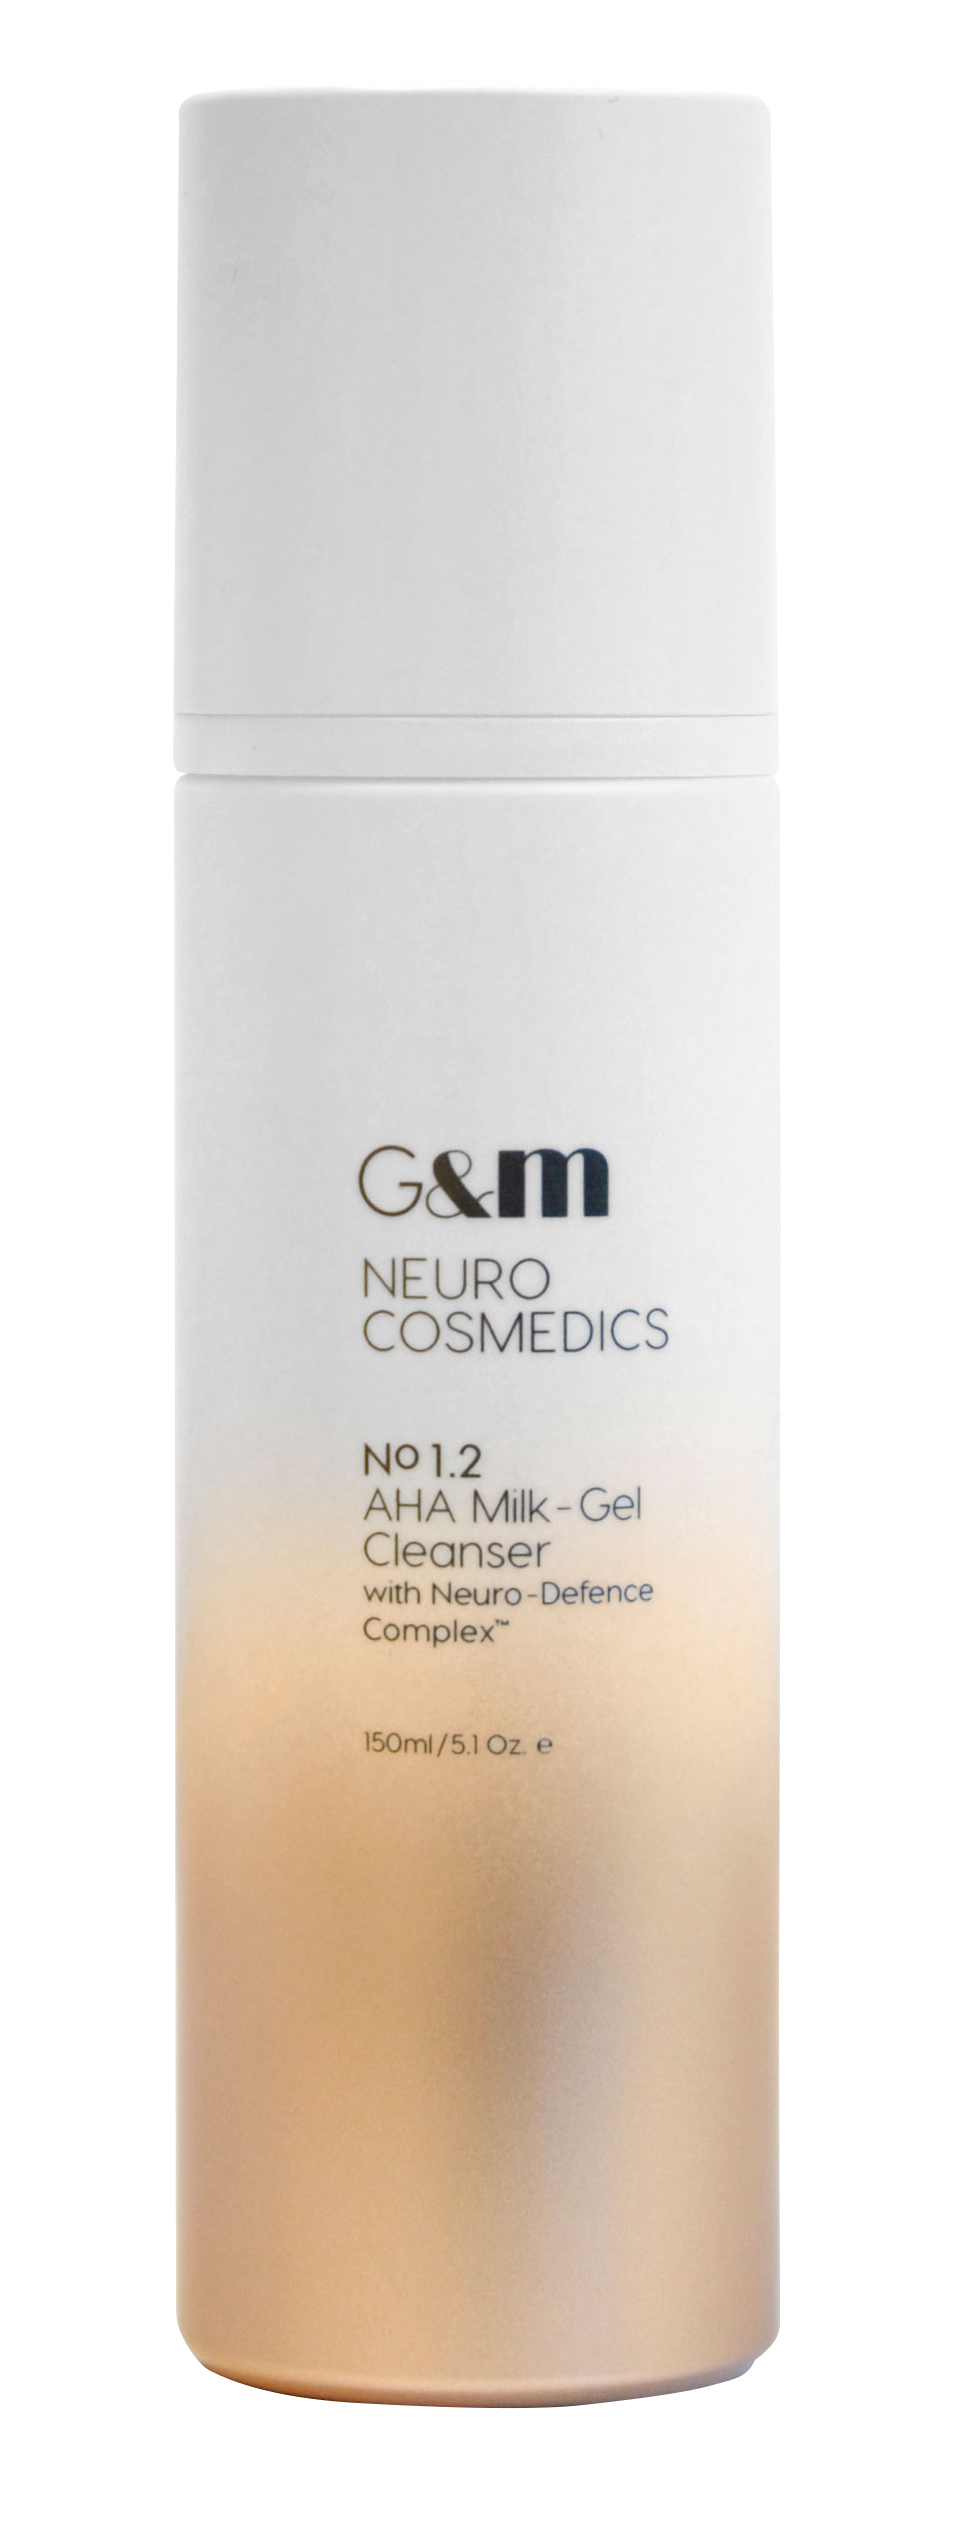 AHA Milk-Gel Cleanser 150ml